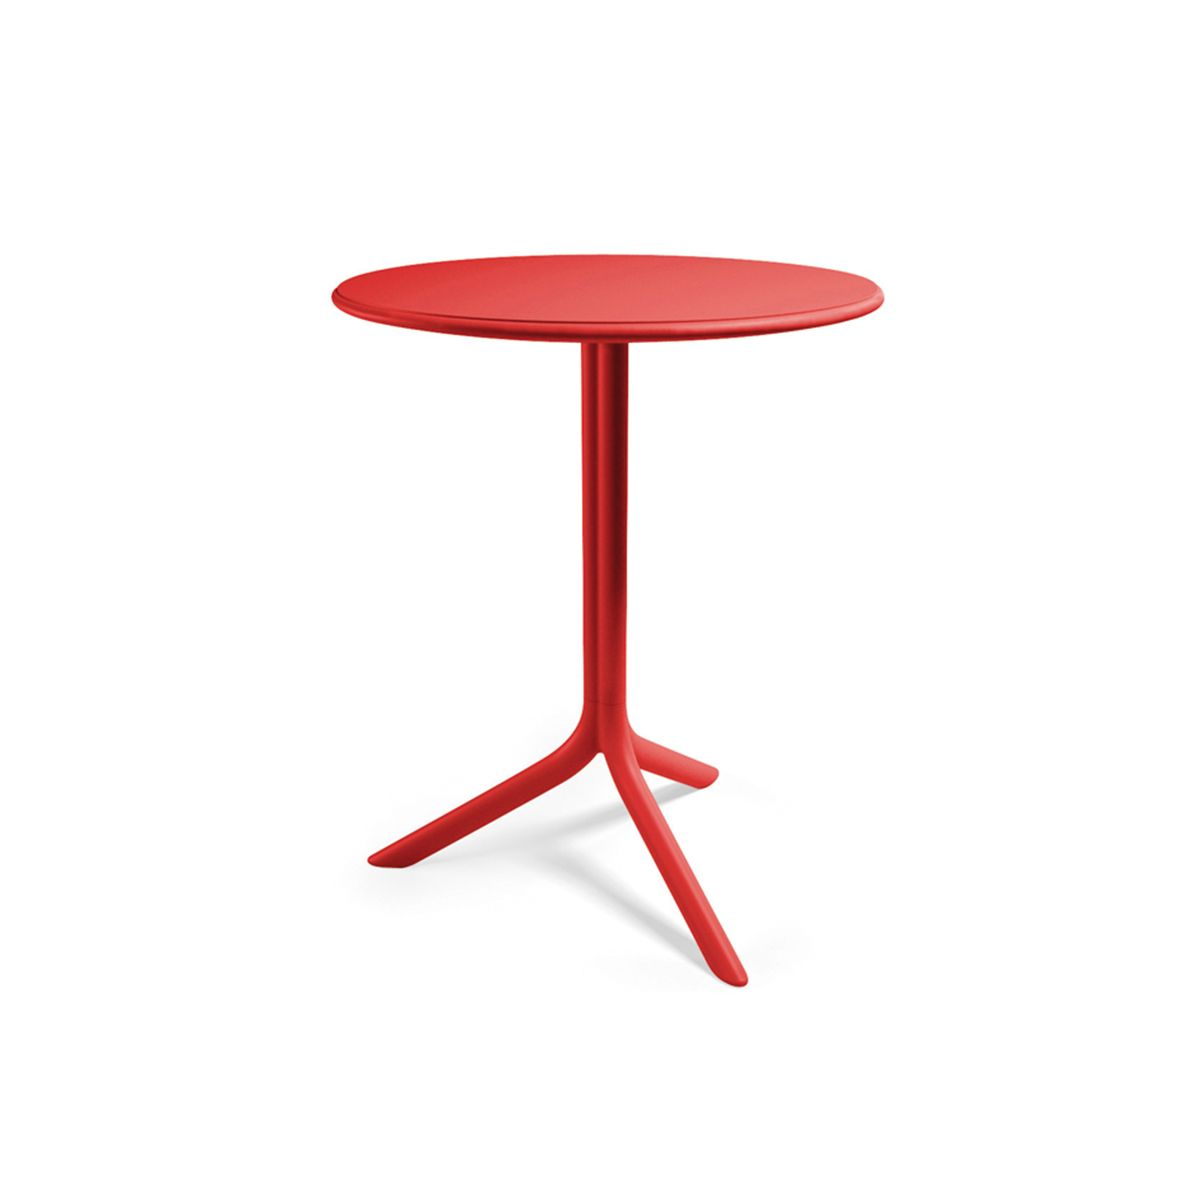 Table ronde jardin terrasse spritz nardi zendart design for Meuble de jardin nardi